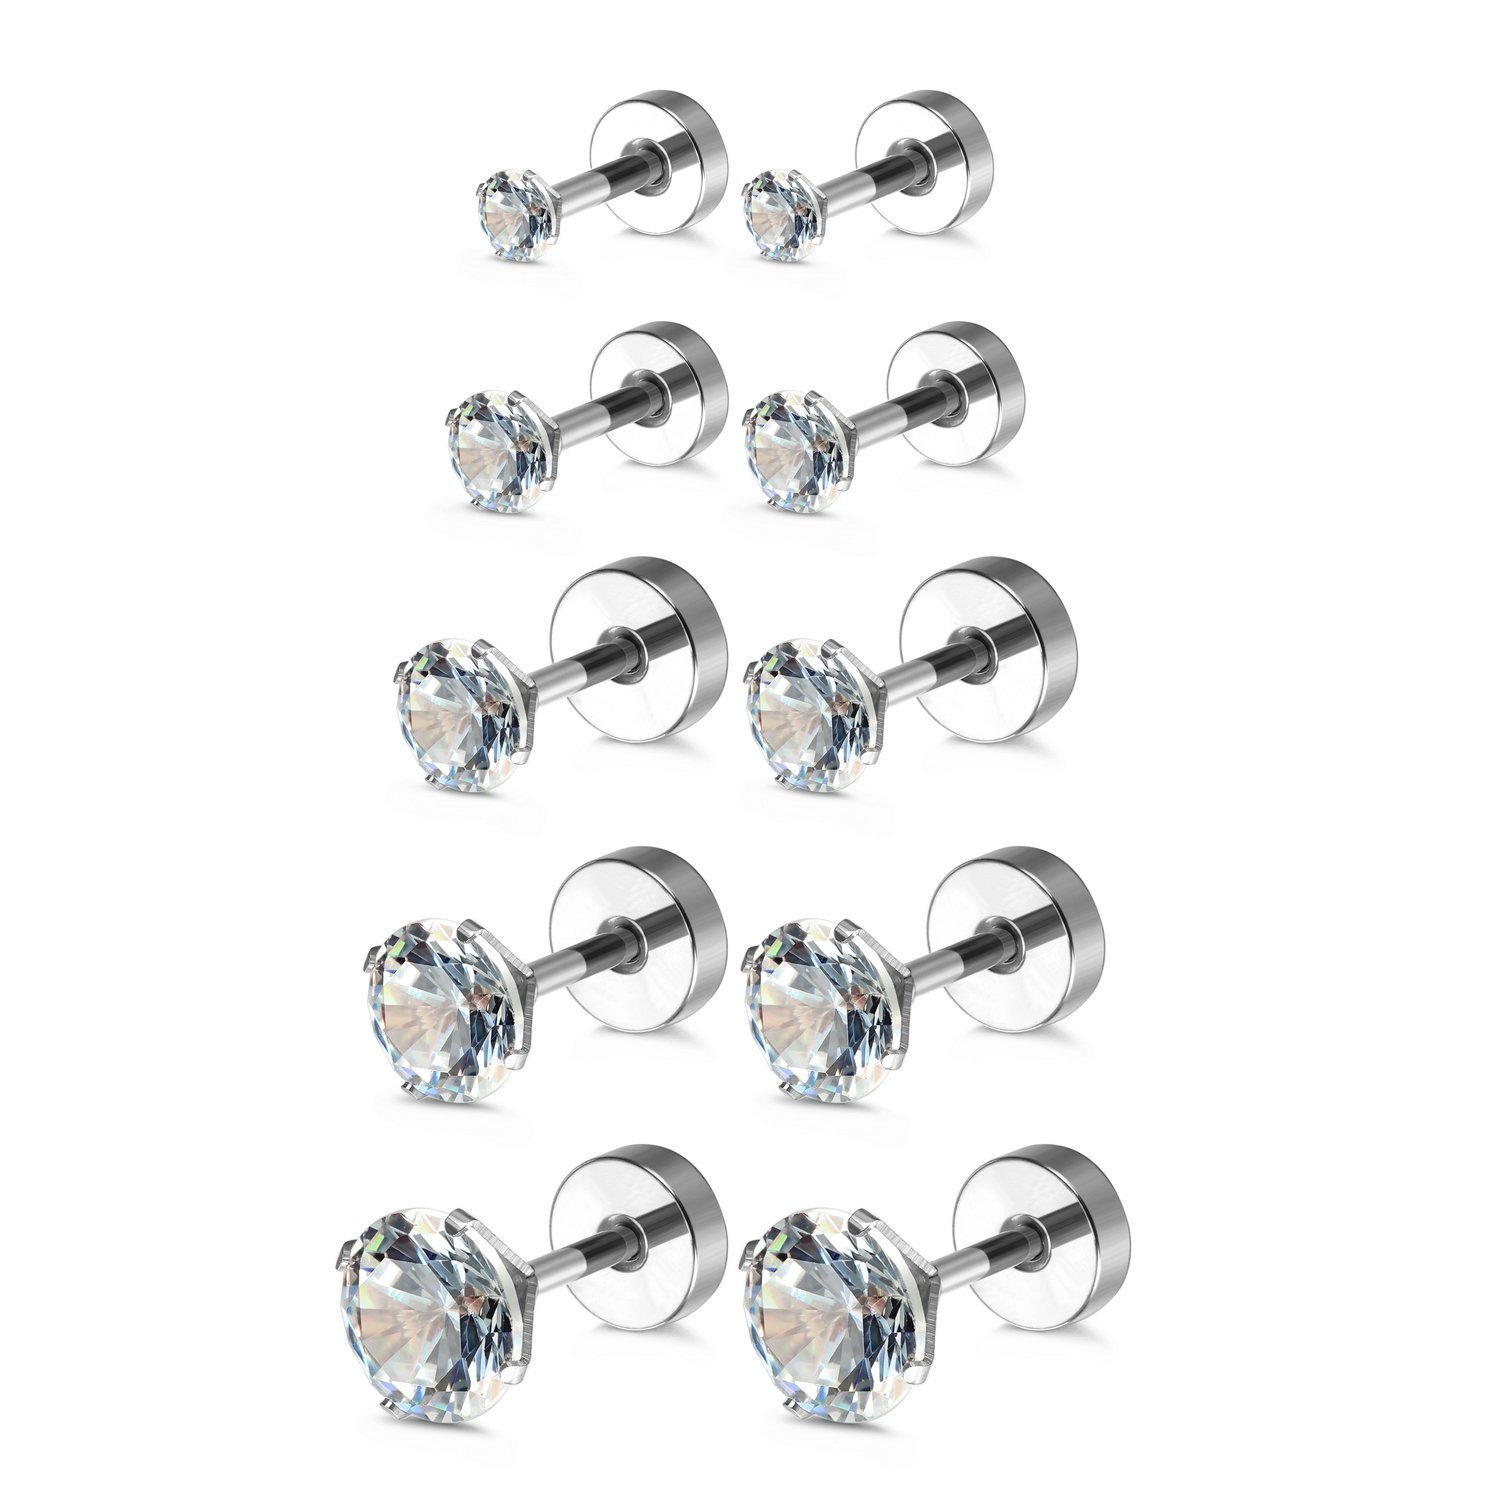 dc8258f54 ... Charisma 16G 5 Pairs Stainless Steel Stud Earrings Piercing Tragus Cubic  Zirconia Cartilage Screw Back Helix ...